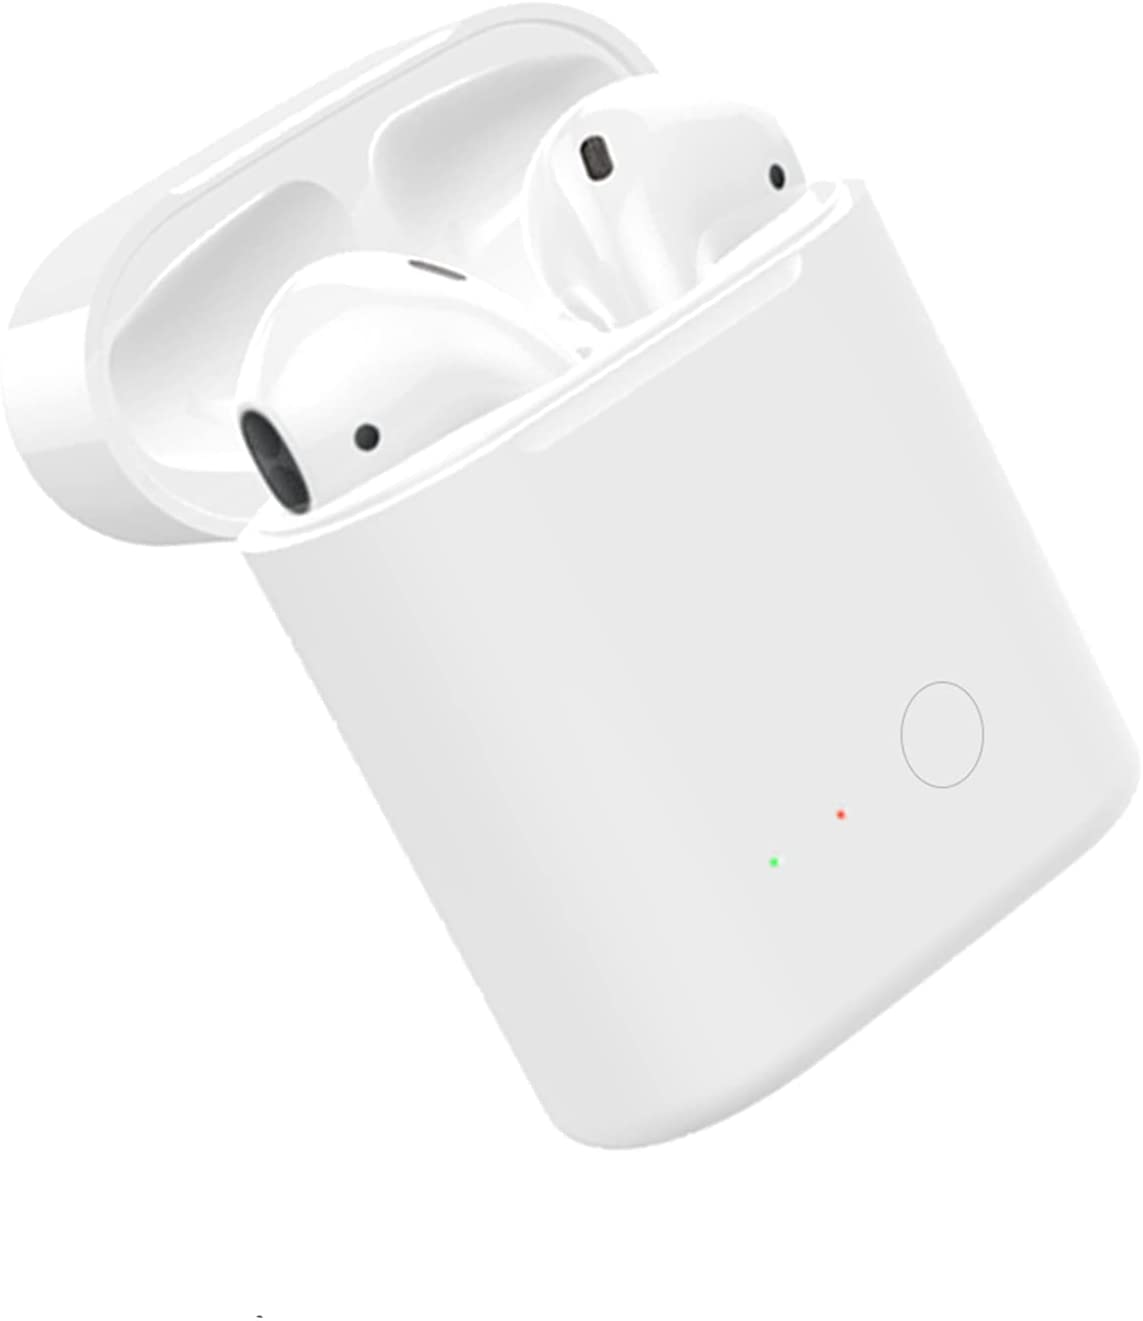 Upgraded Qi Wireless Charging Case Replacement Compatible with AirPods 1 2 with Sync Bluetooth Pairing Button, Protective AirPod Charger Cover air pods charging dock (White)